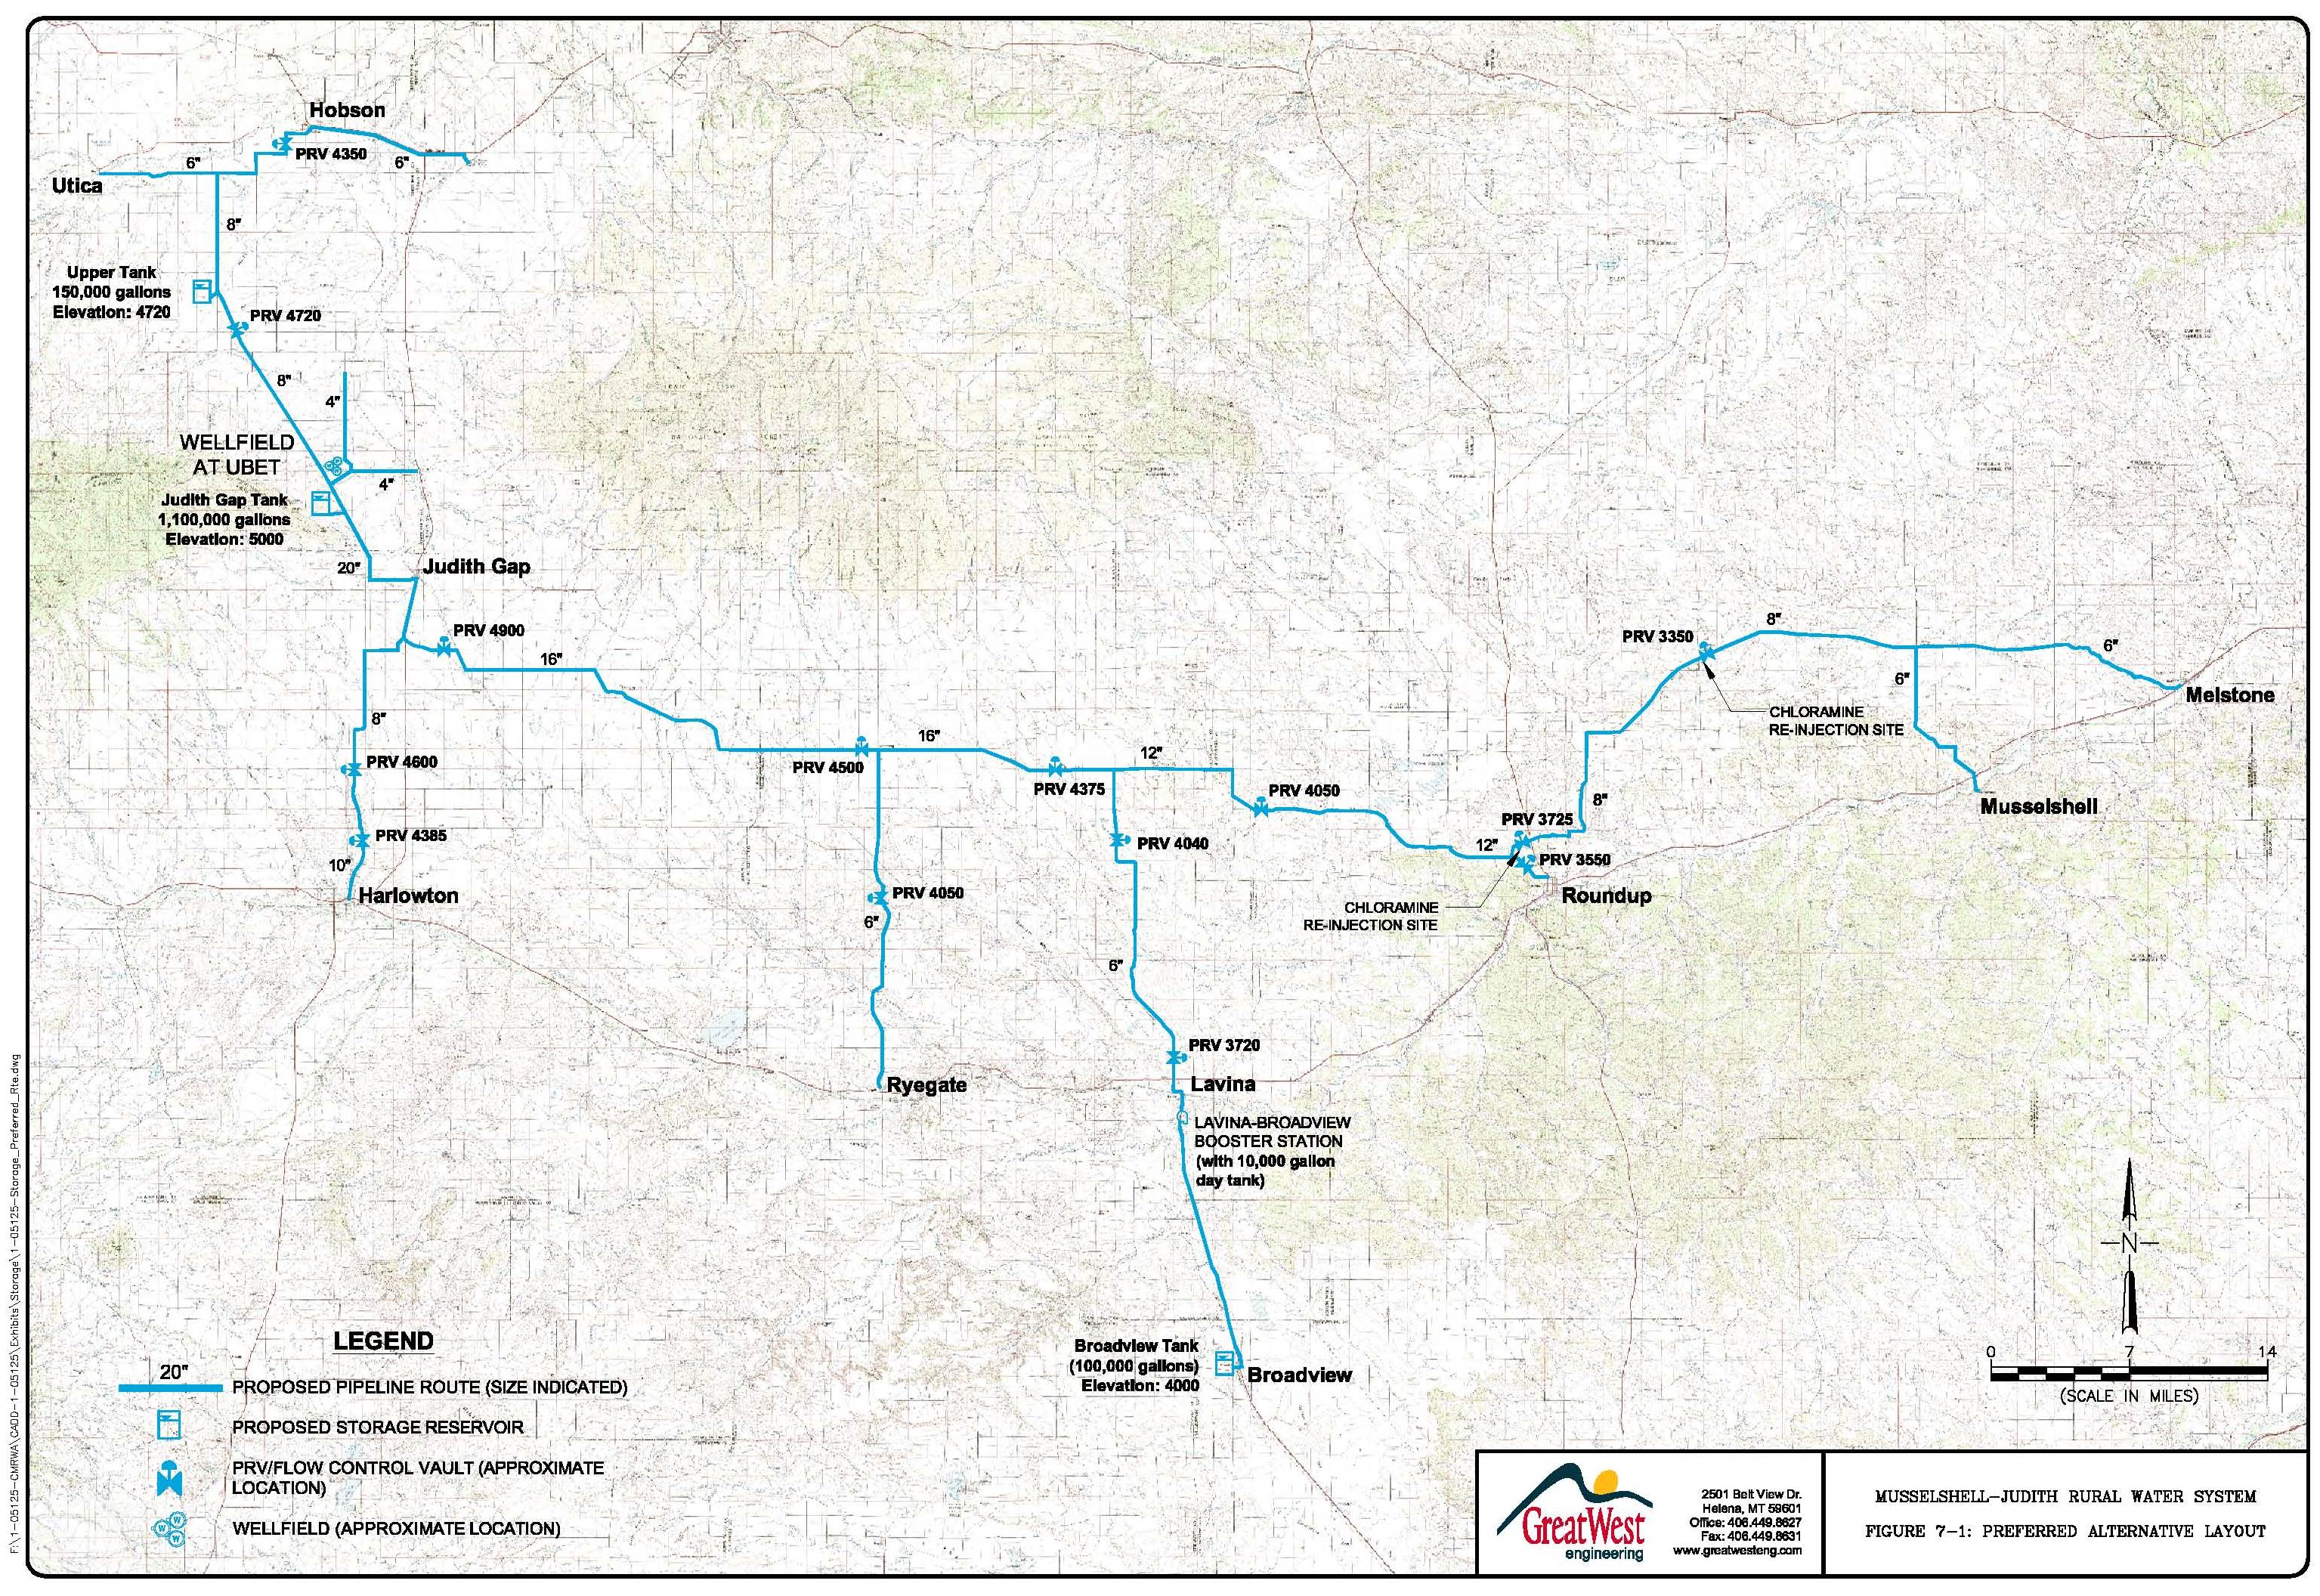 CMRWA proposed route